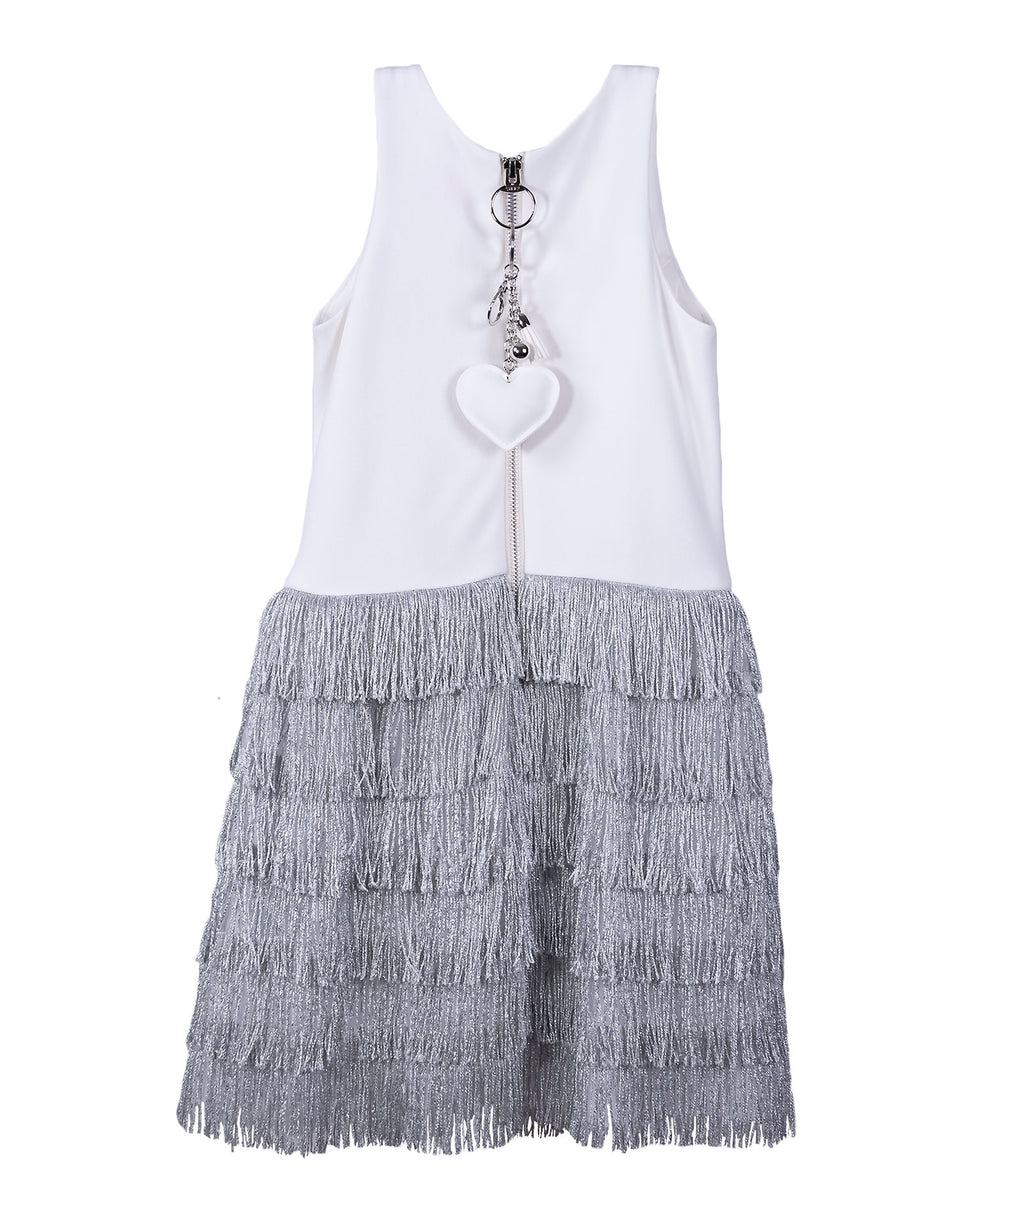 Zoe Ltd. Girls Ivory and Silver Fringe Halter Dress